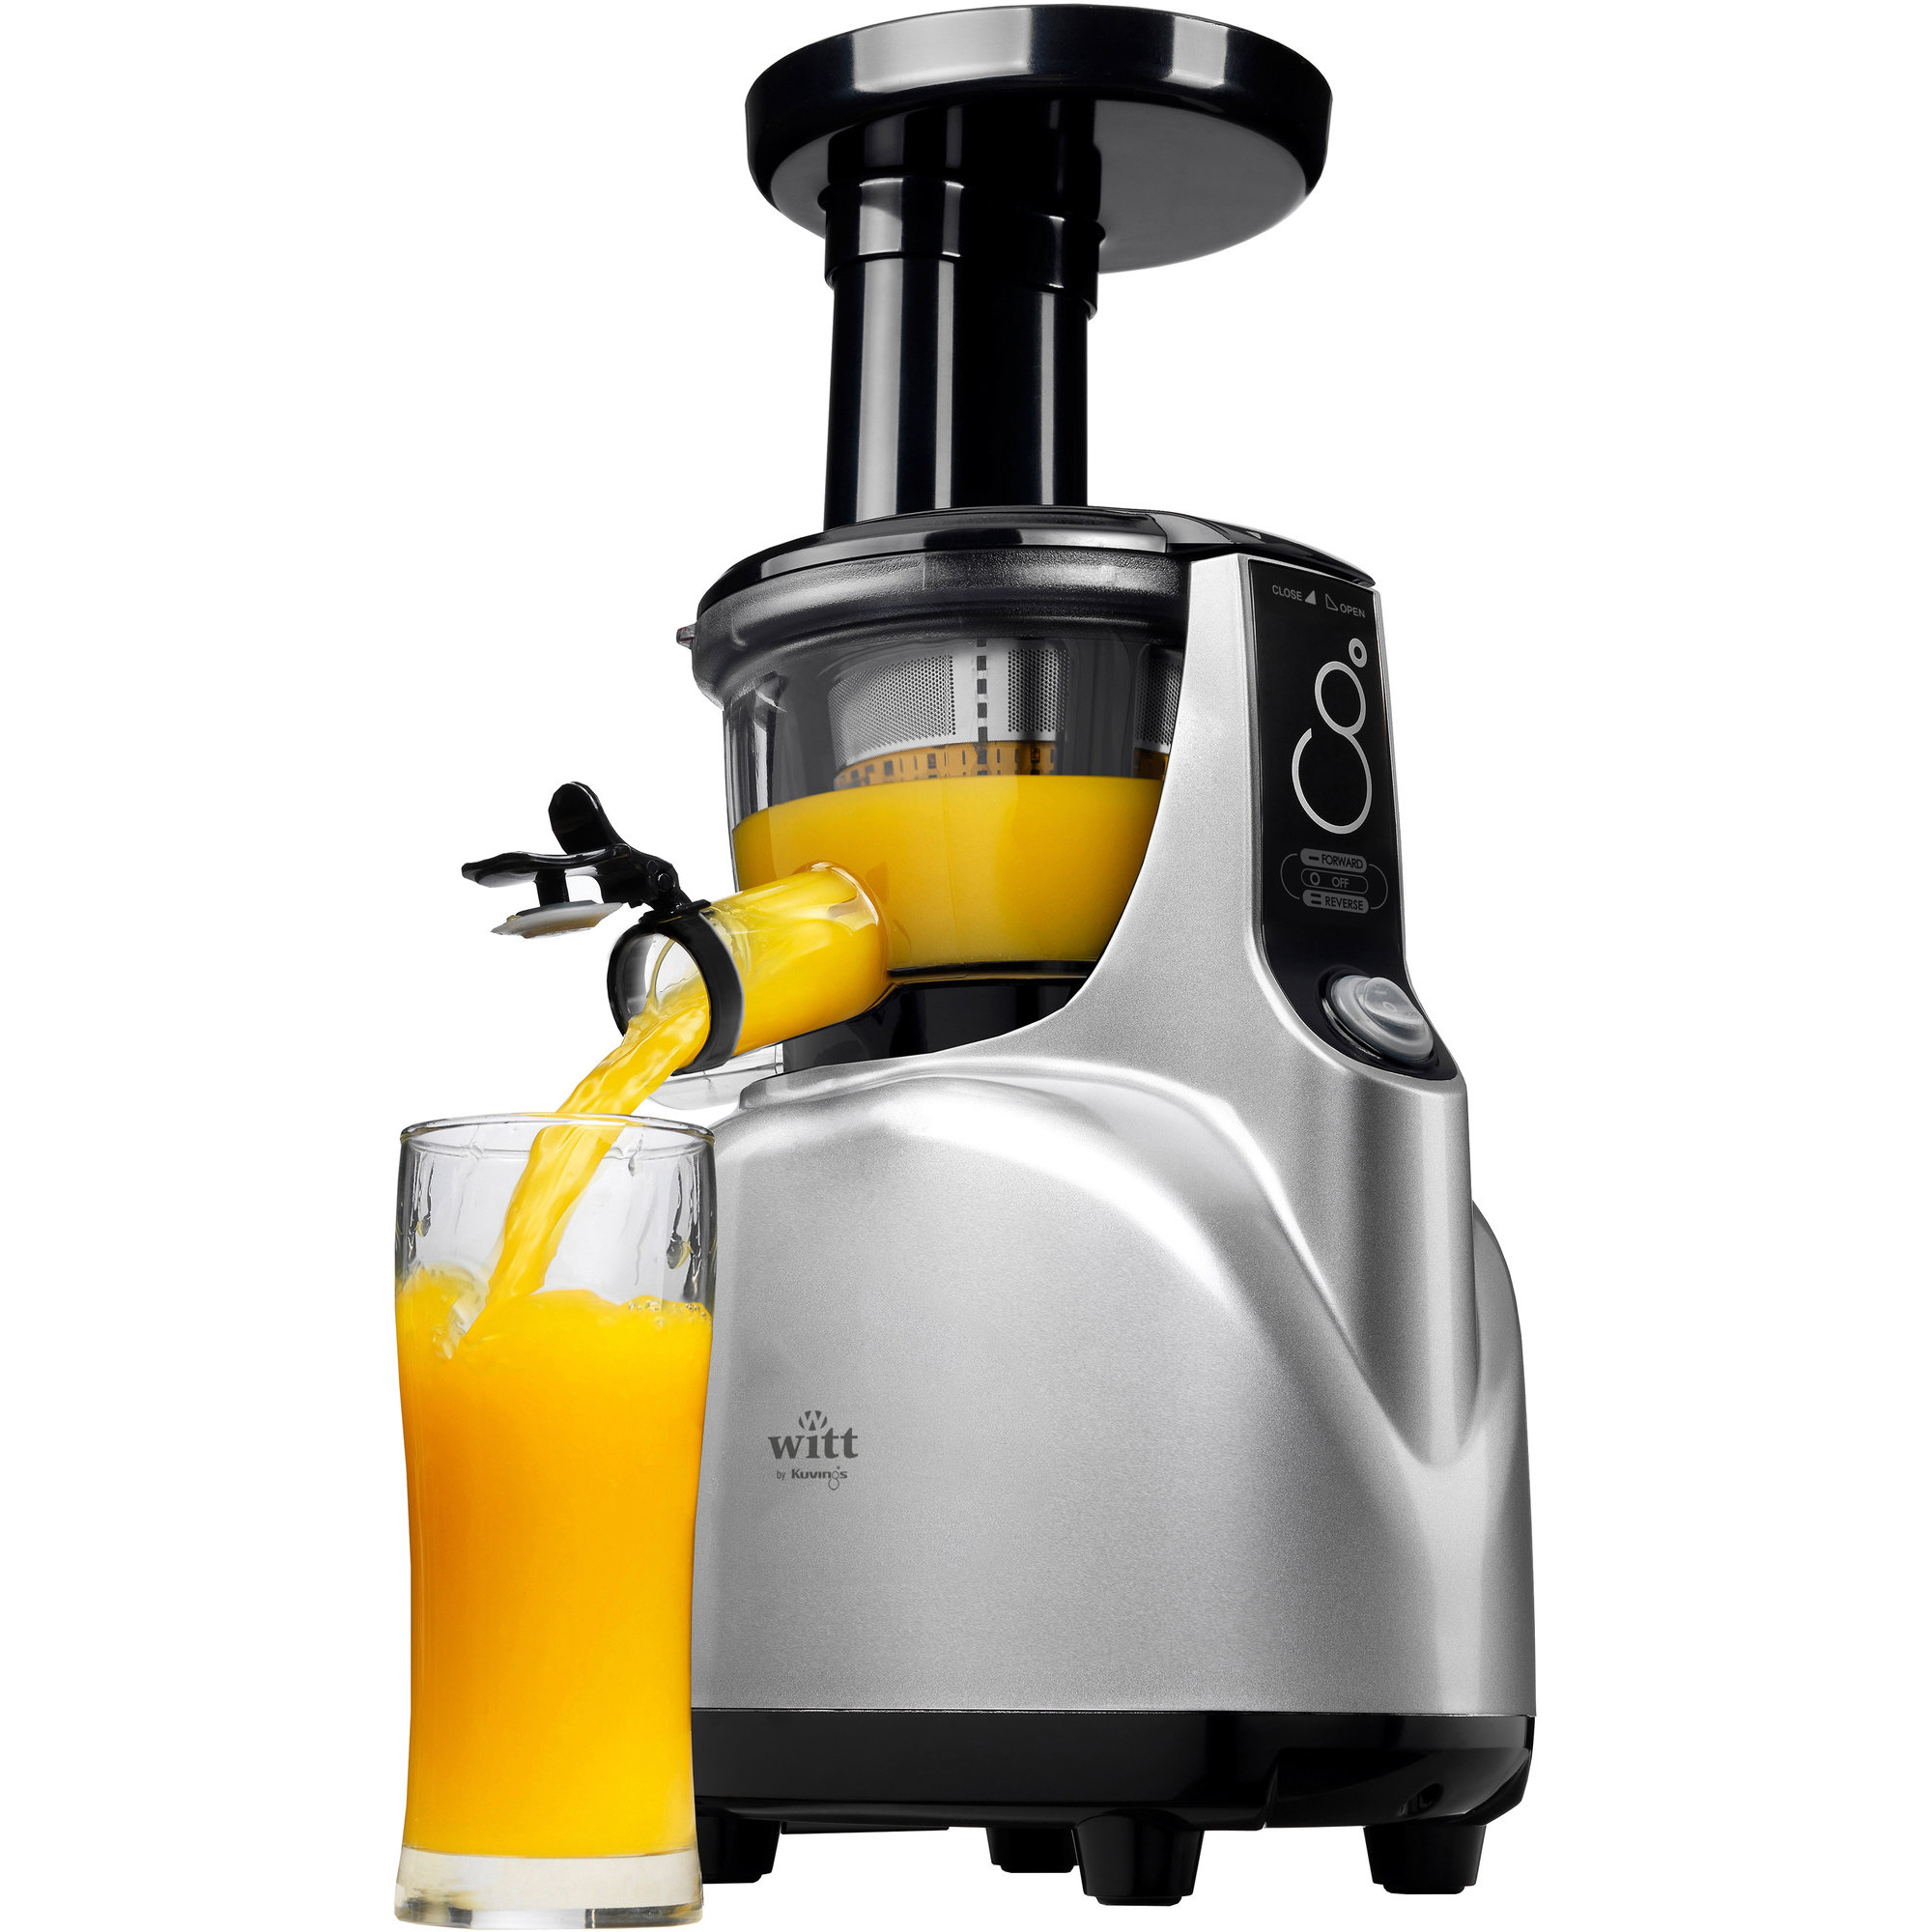 Witt By Kuvings Slow Juicer Review : Kjop B5100S Silent Slow Juicer solv fra Witt by Kuvings